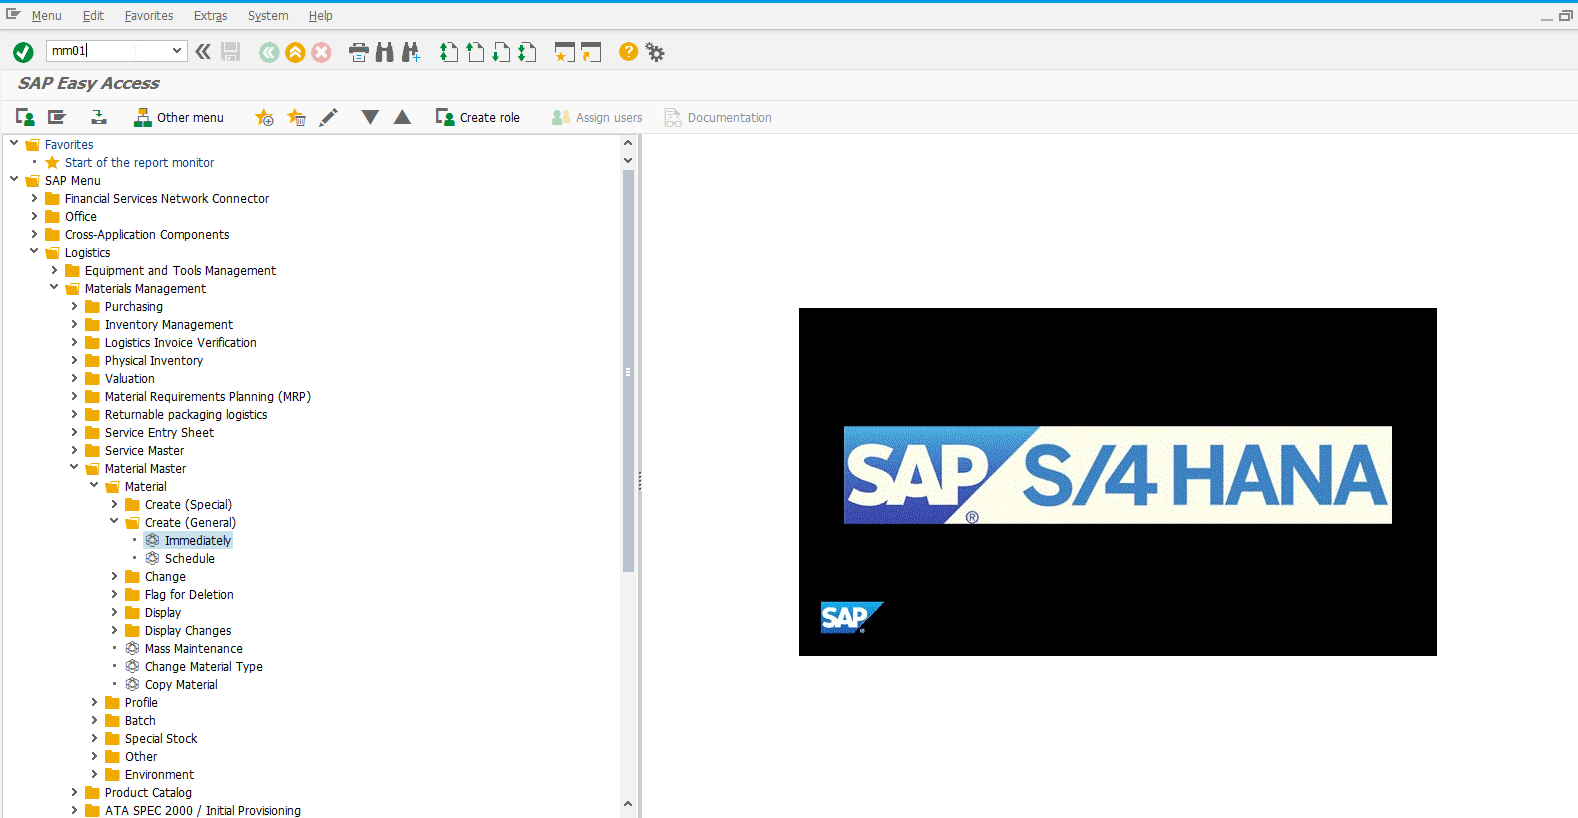 Entering MM01 SAP transaction in SAP HANA Easy Access